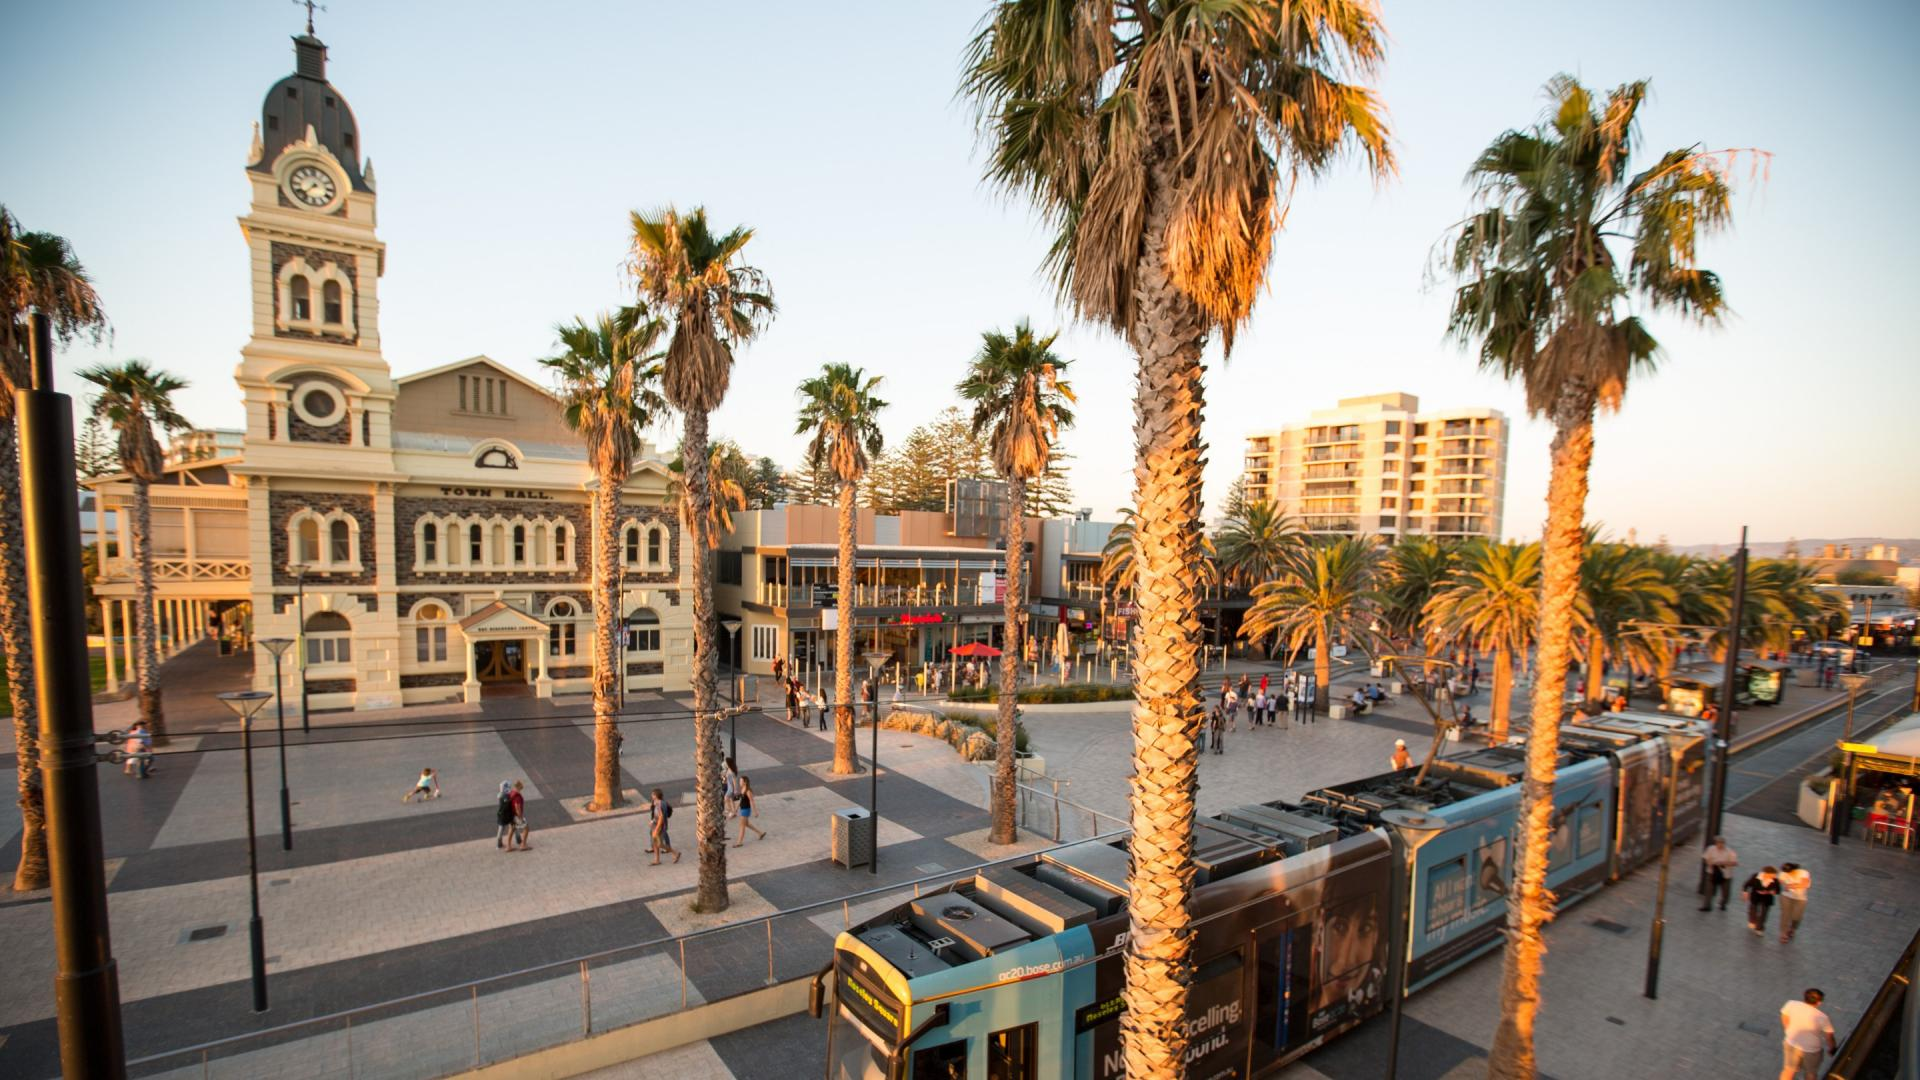 ADELAIDE – Services between Sunshine Coast and Festival State resume